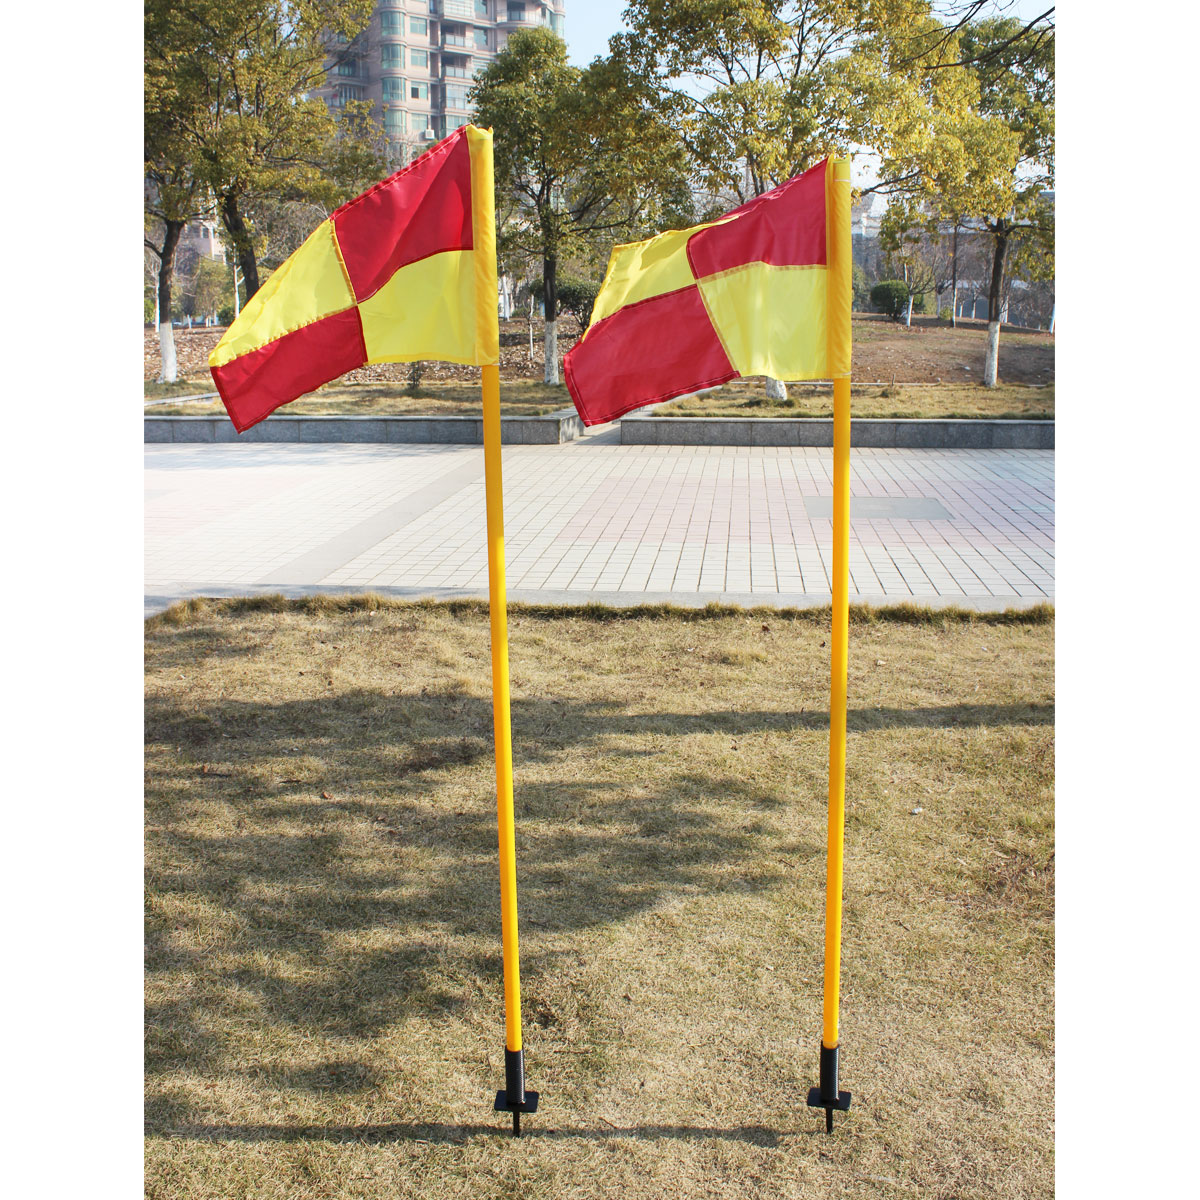 Luwint soccer corner flag inserting ground patrol the edge flag pole flag pole spring obstacle corner flag football referee